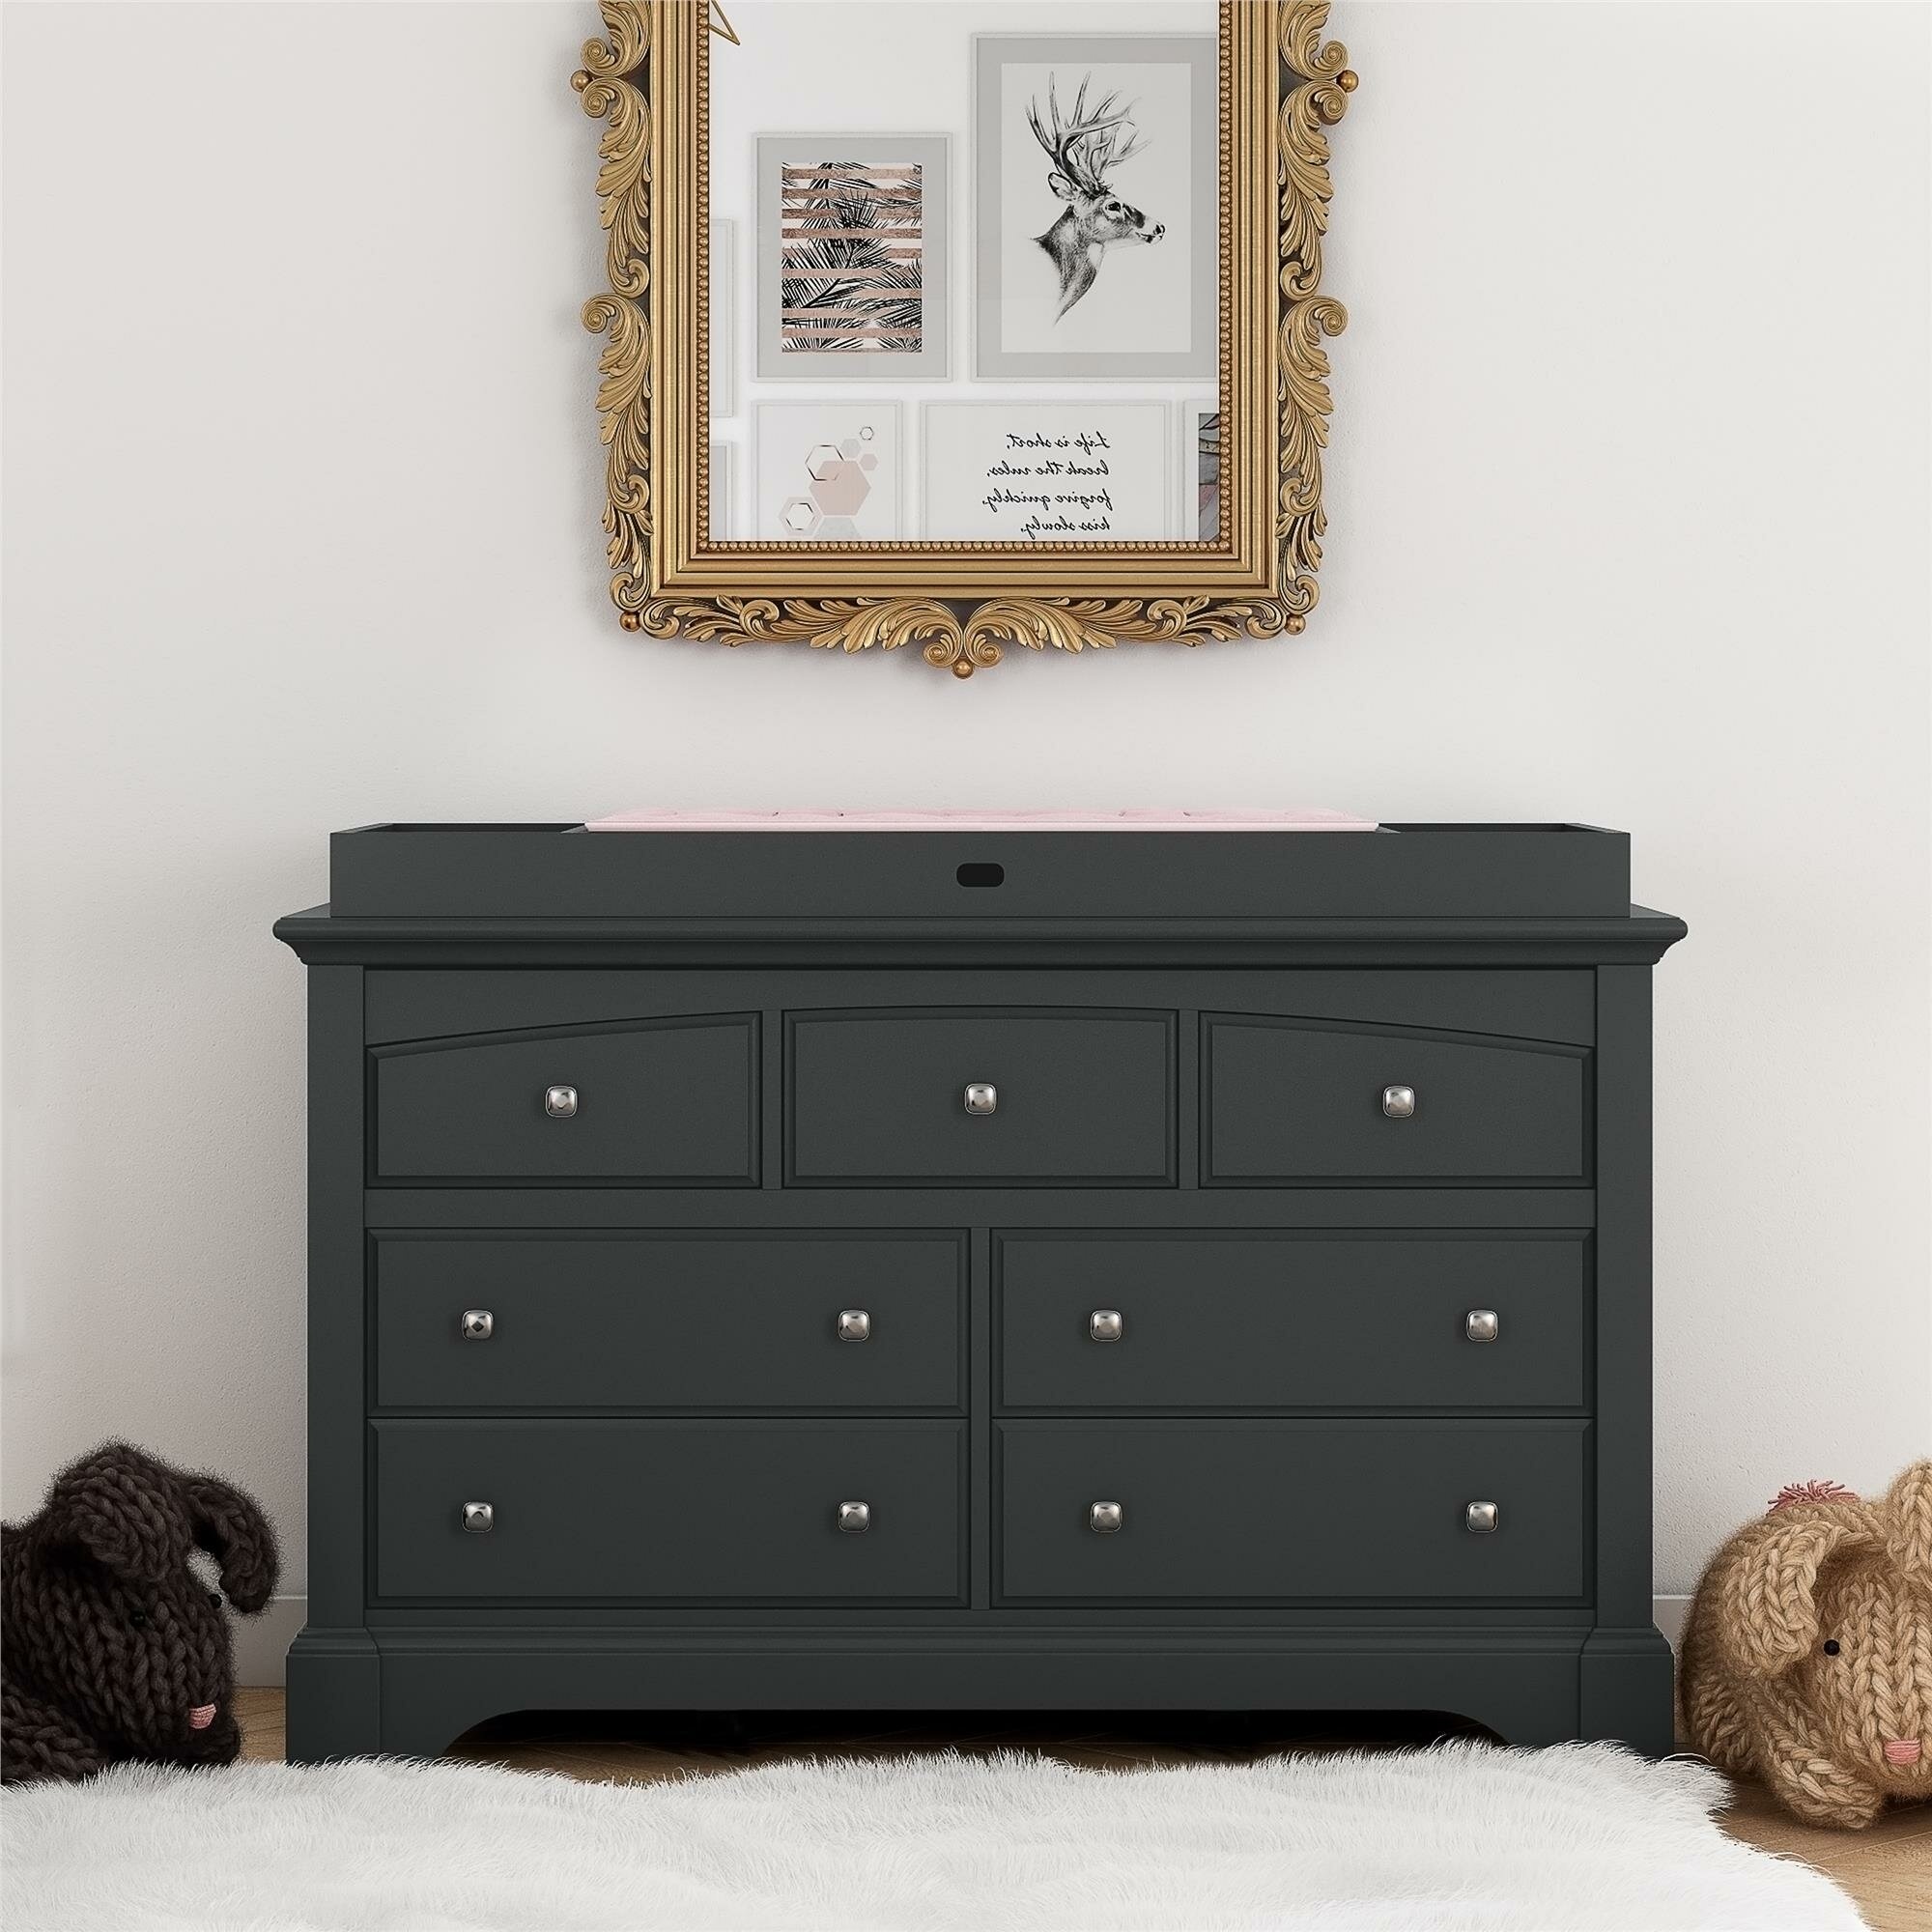 Fairhaven Changing Table Dresser